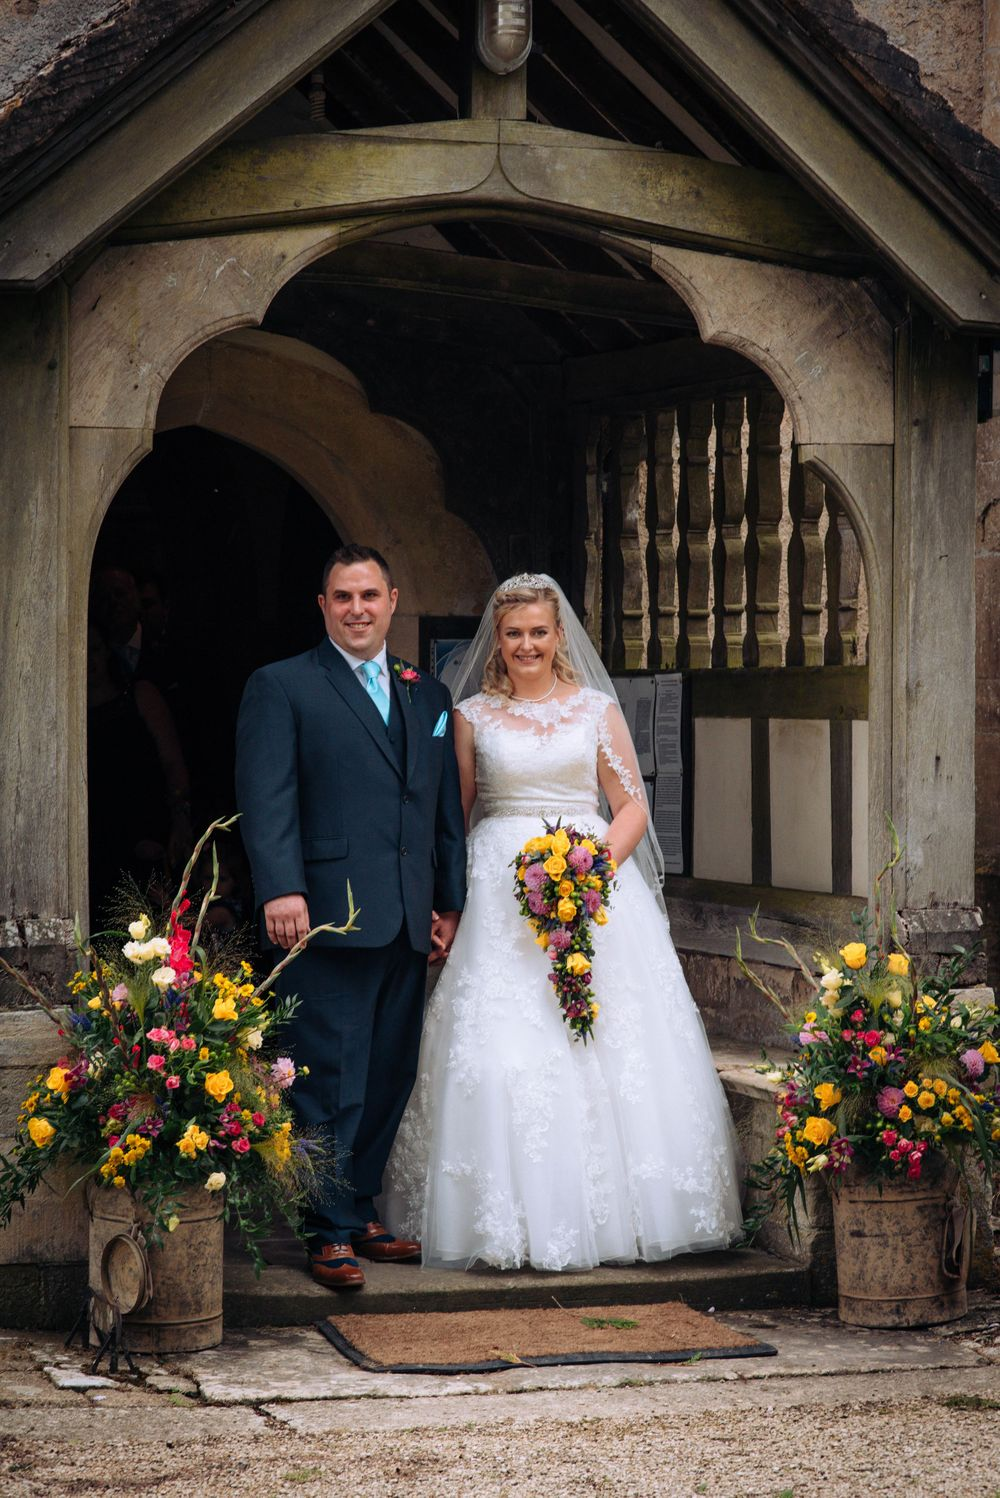 Elmore wedding by Zara Davis Photography, Gloucestershire outside just married